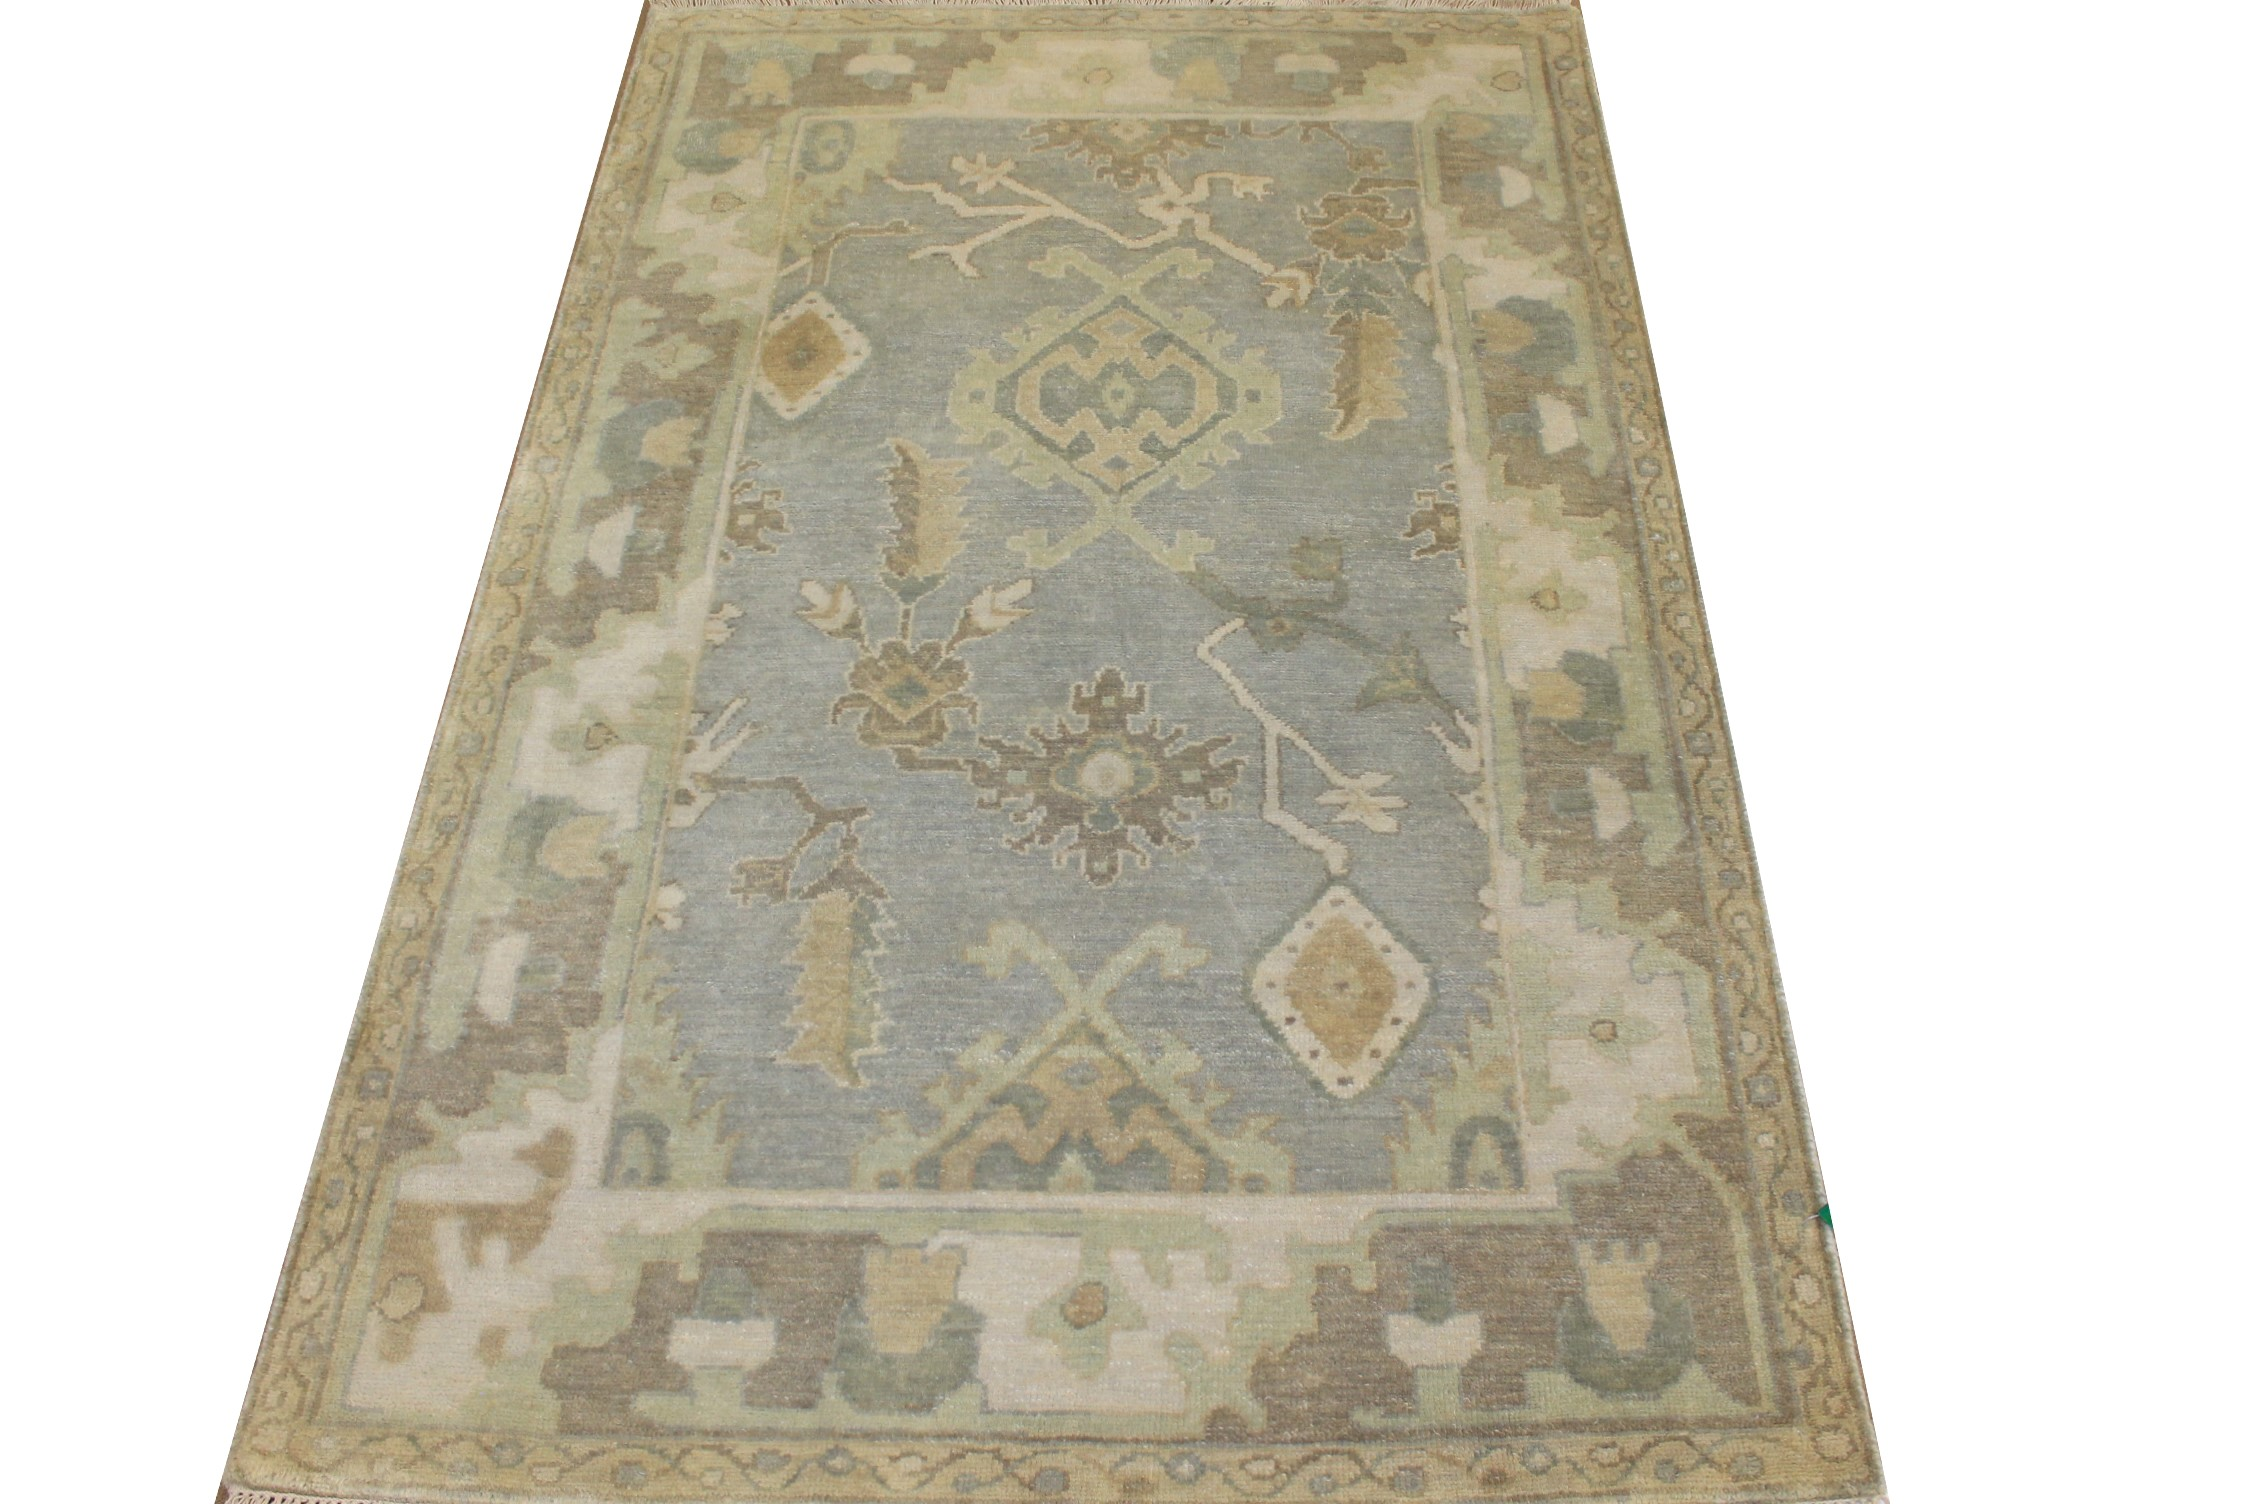 4x6 Oushak Hand Knotted Wool Area Rug - MR025142